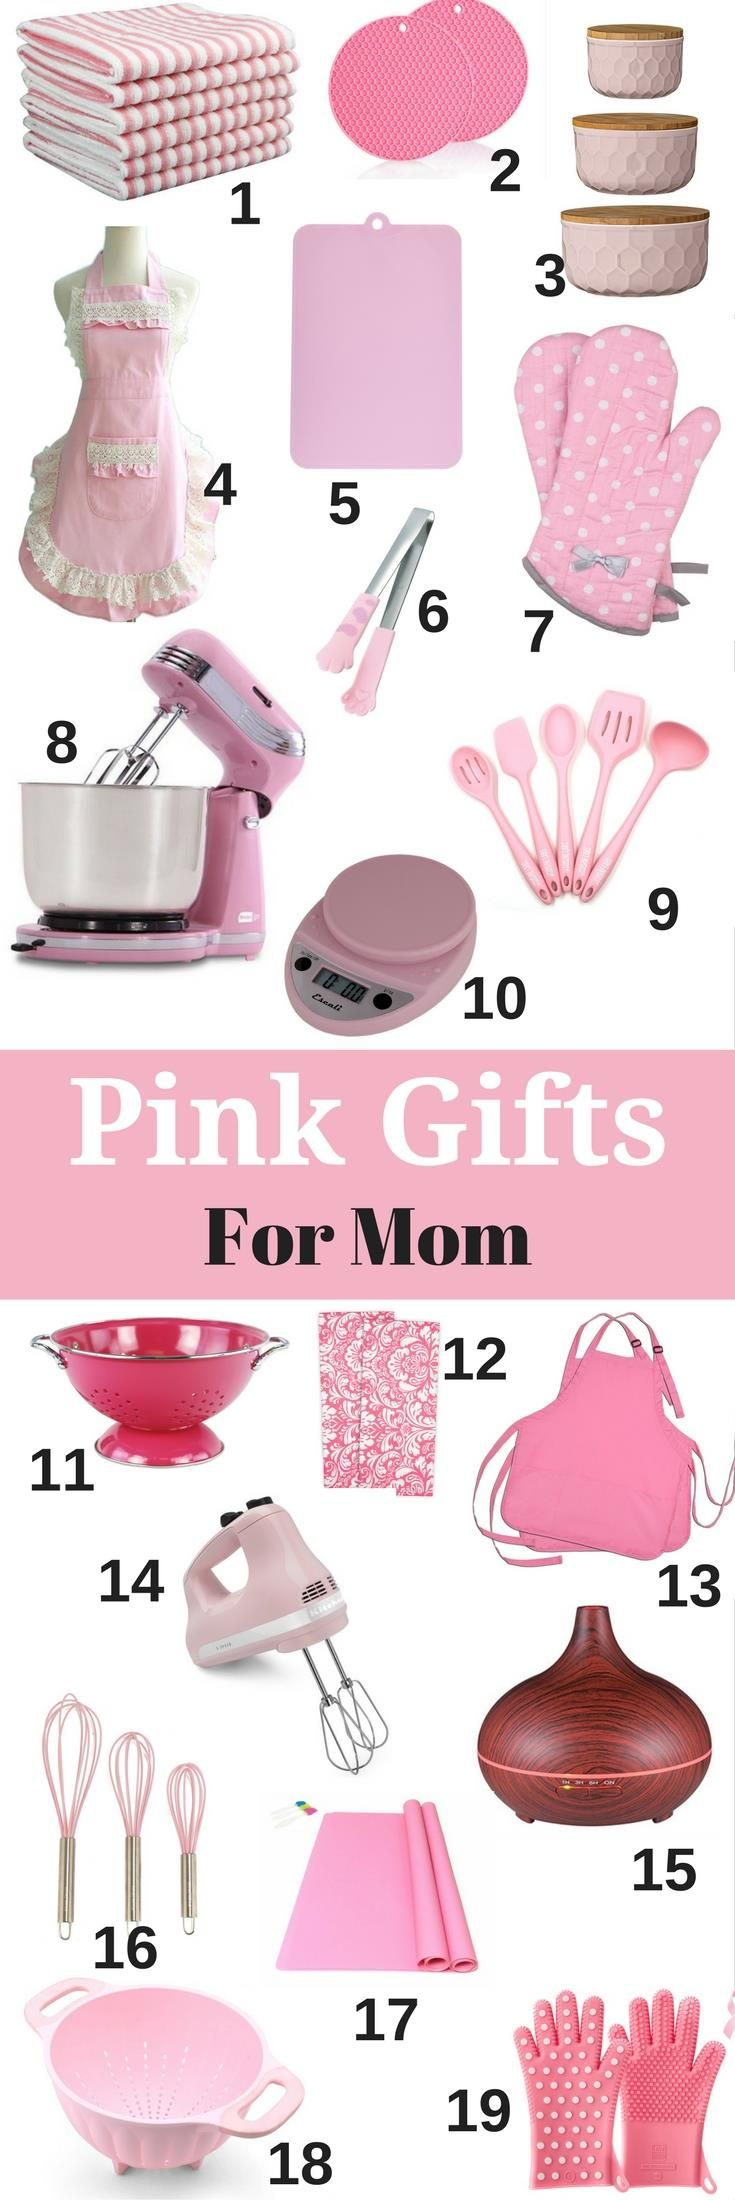 Gifts for mom - beautiful pink presents for Mother's Day, birthday or a holiday gift. Great ideas for DIY gift baskets or a dish towel cake with these too (see the pictures).